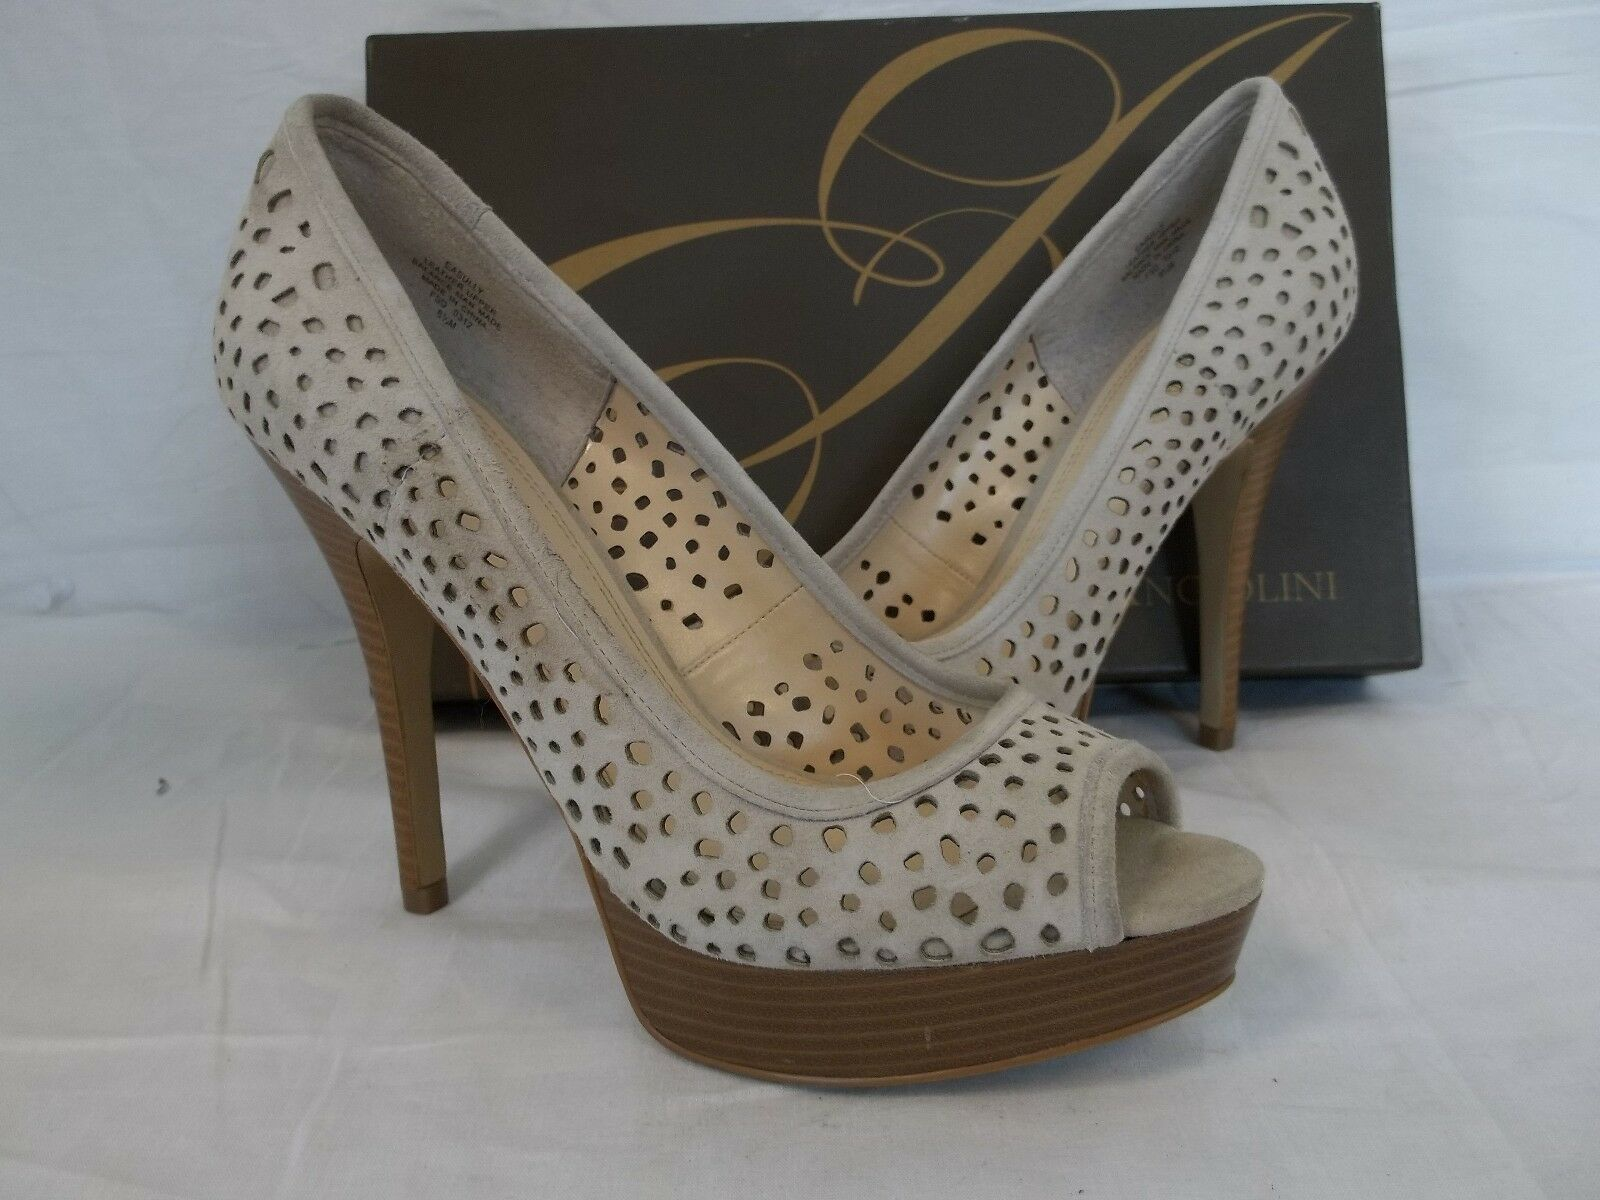 Enzo Angiolini Größe 11 M Sully Natural Suede Heels New Damenschuhe Schuhes